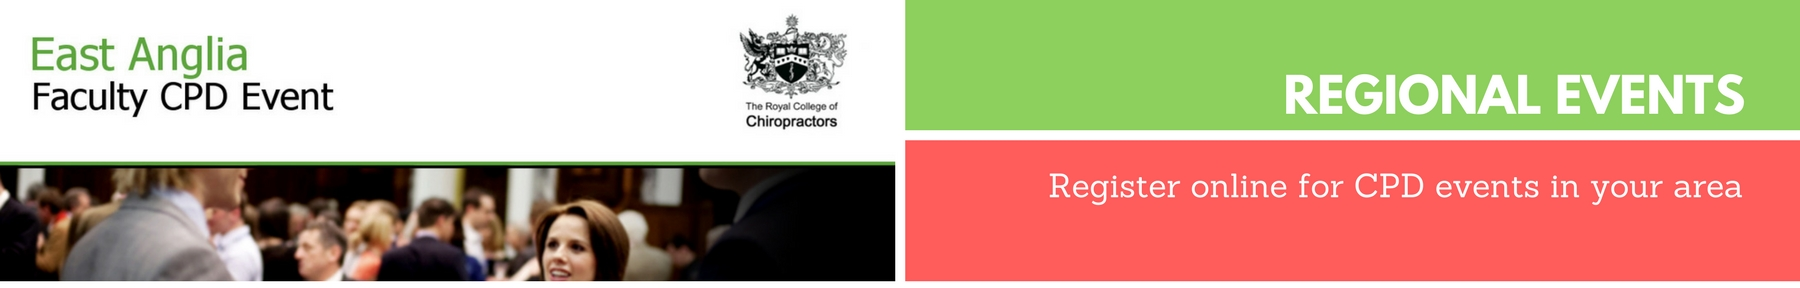 rcc, chiropractic, royal college of chiropractors, quality, safety, professionalism